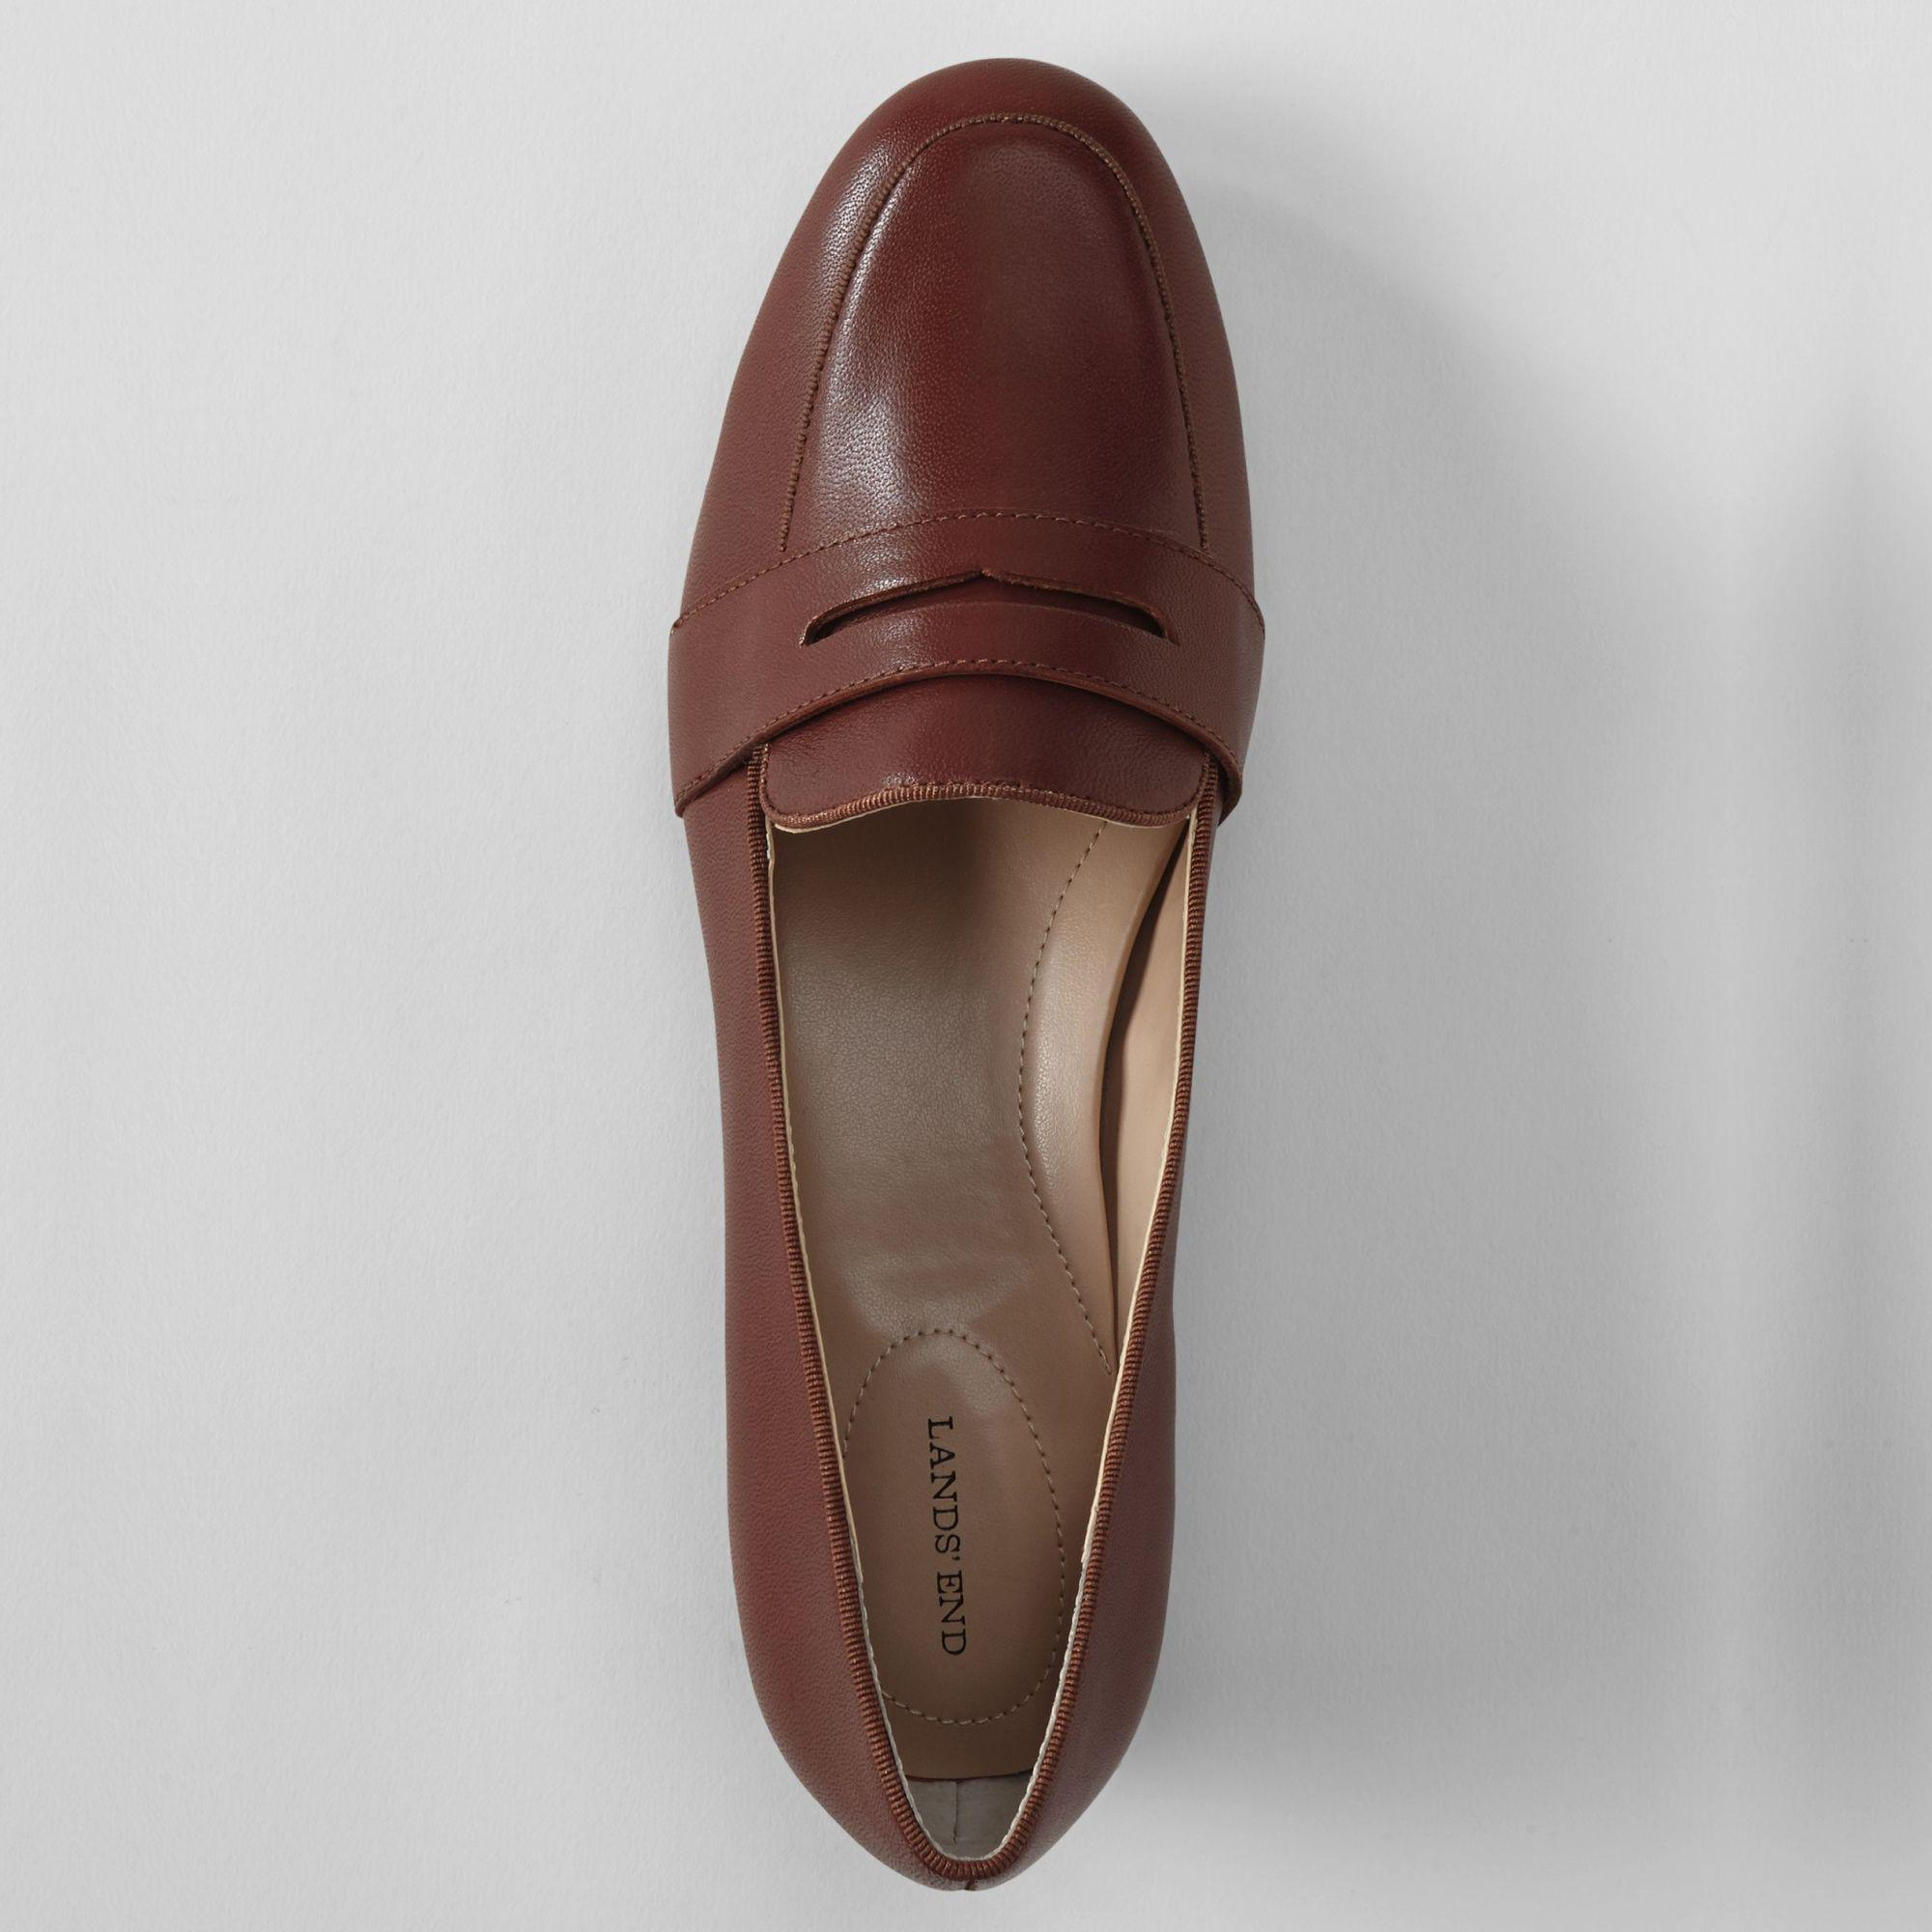 91864fd978c Lands  End - Brown Women s Leather Penny Loafers - Lyst. View fullscreen